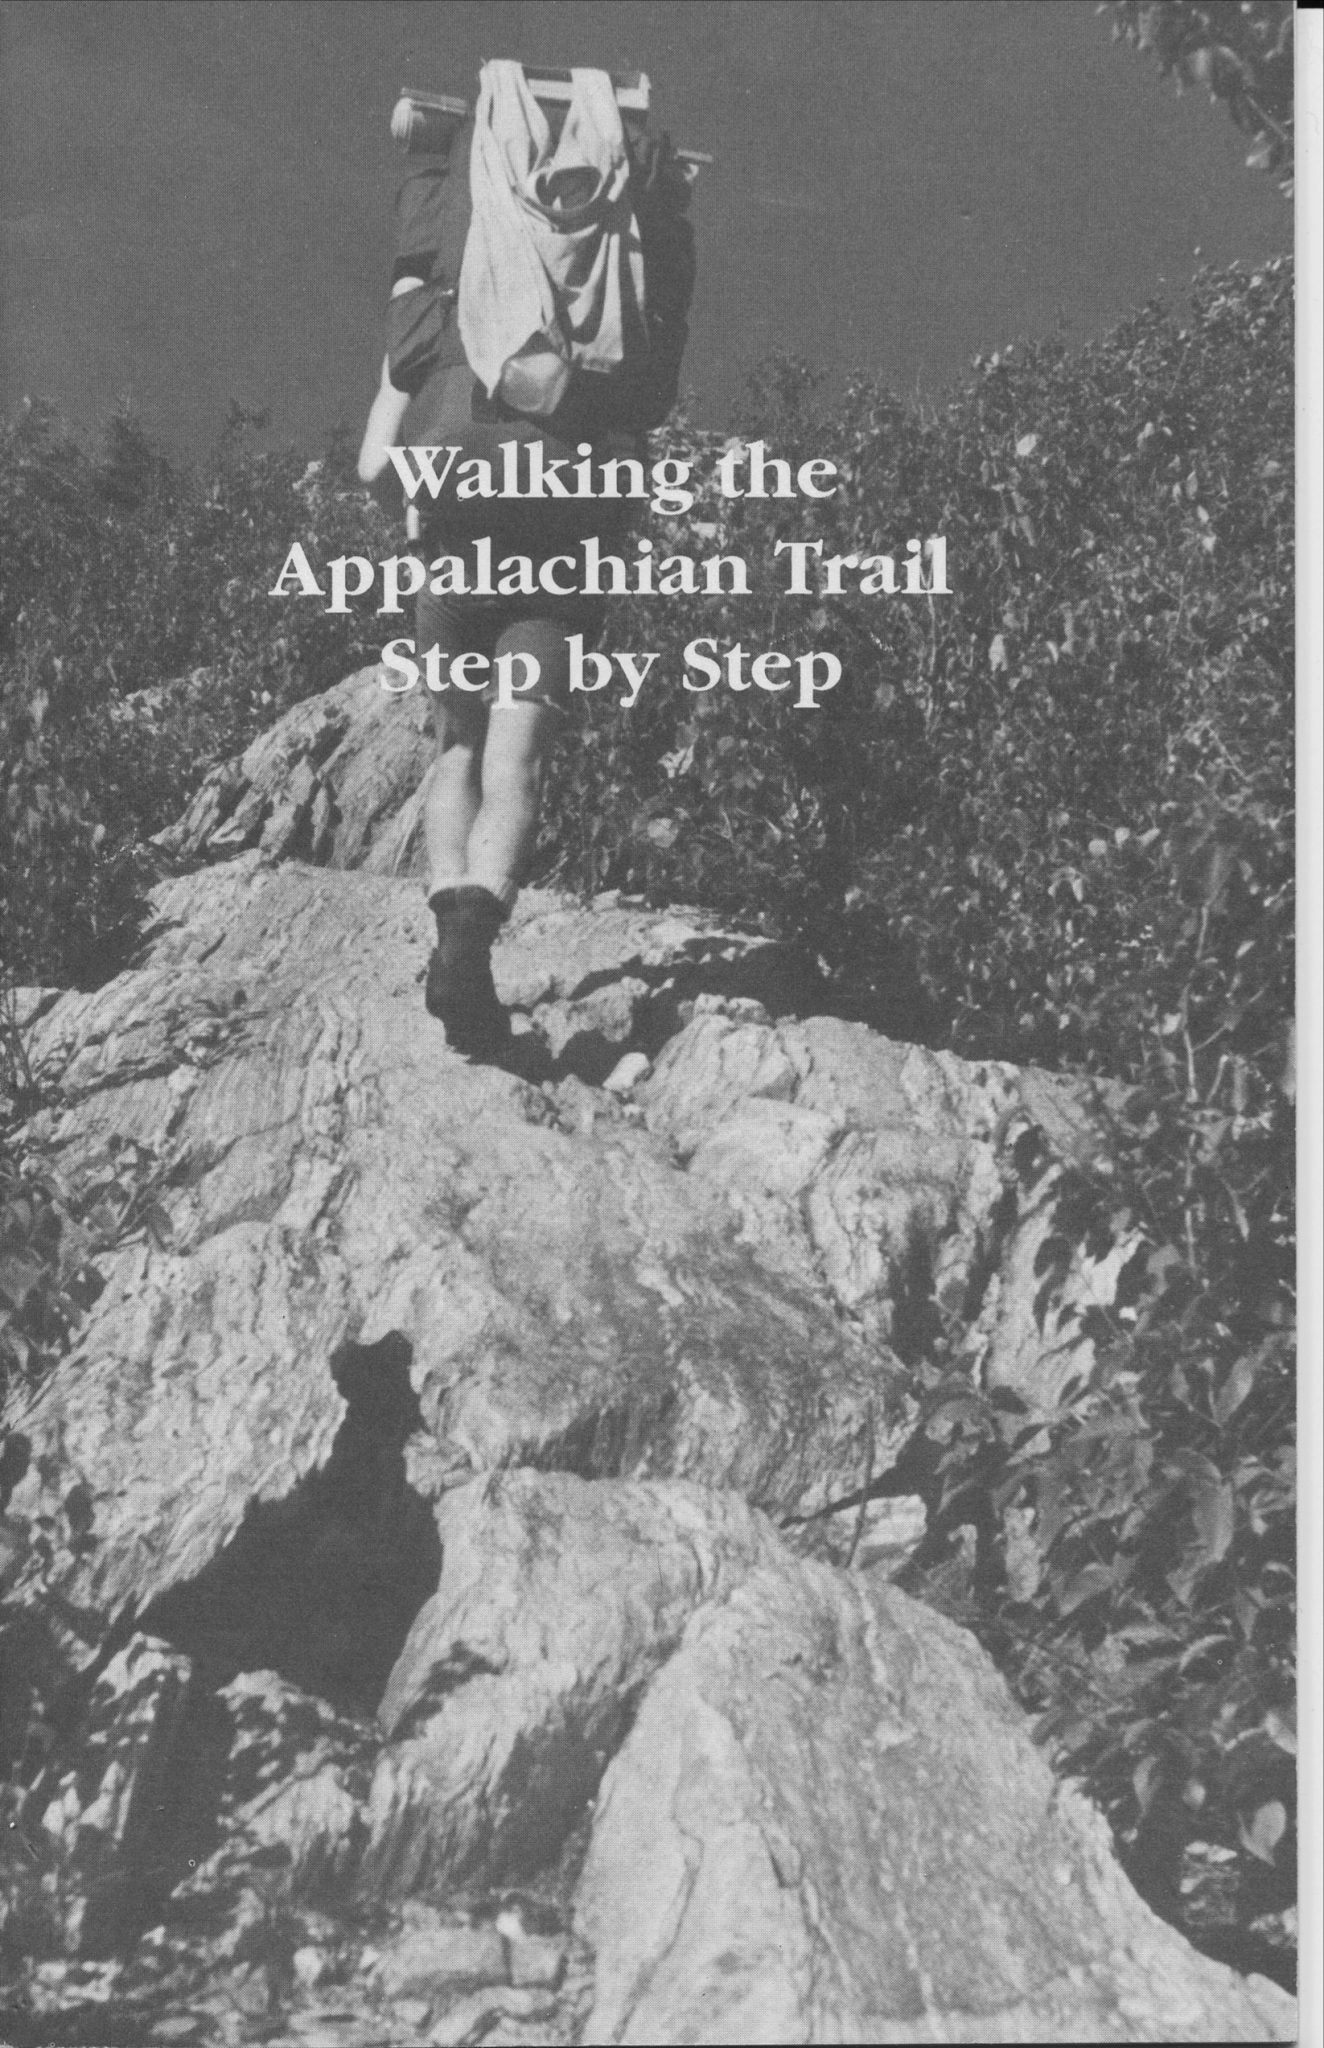 Walking the Appalachian Trail Step by Step